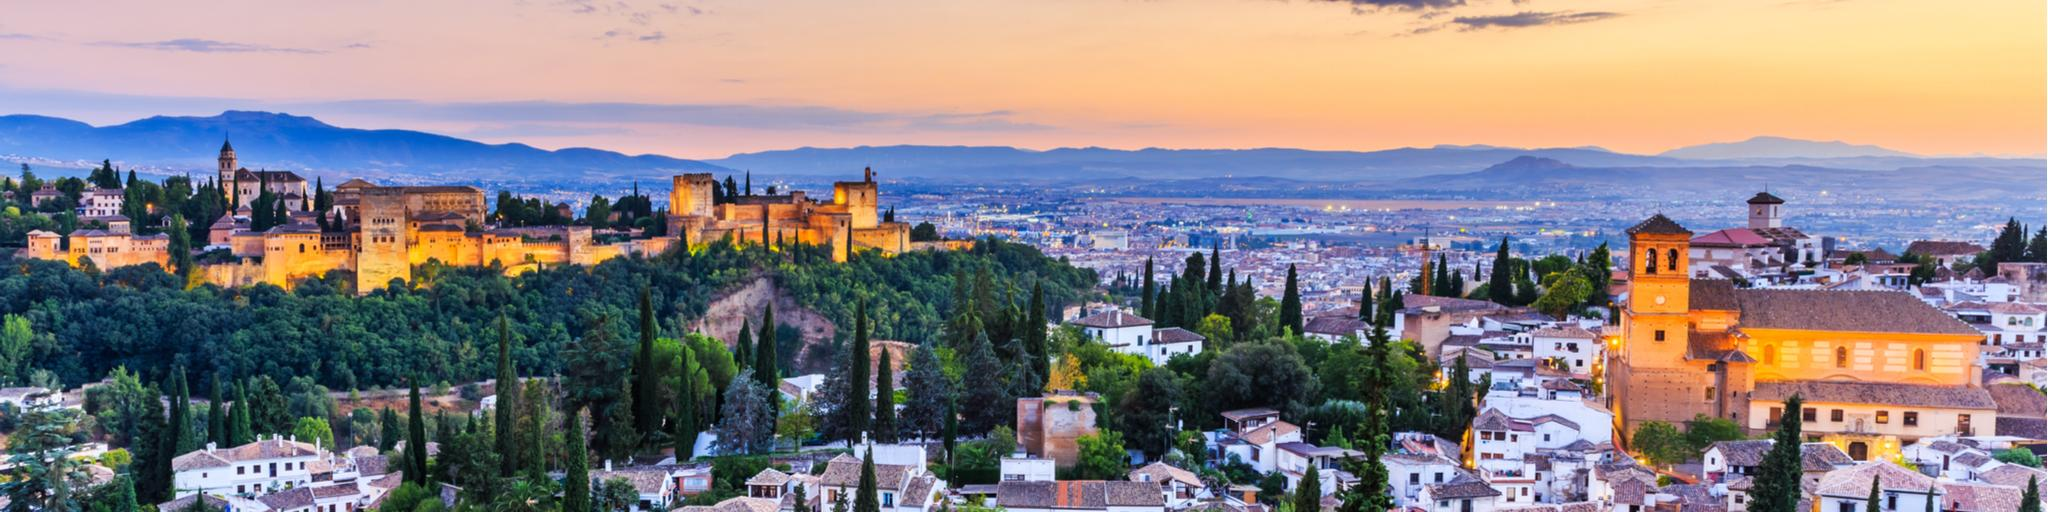 The Alhambra fortress on the Granada skyline in Spain